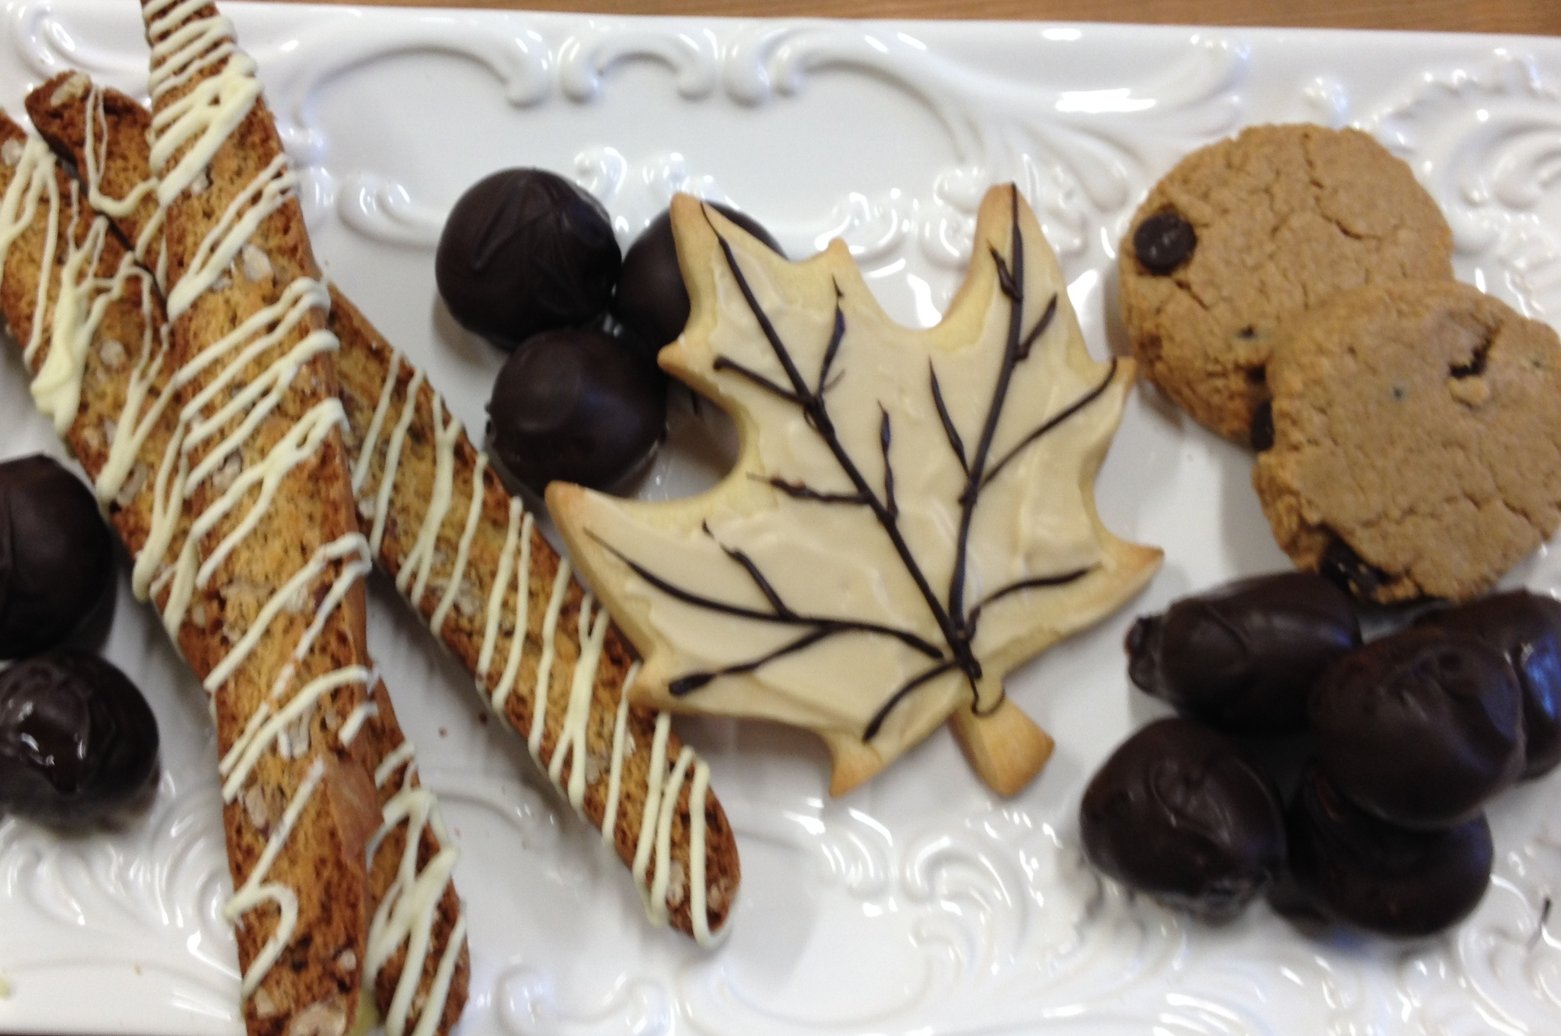 Some of the treats you may find this Maine Maple Sunday!